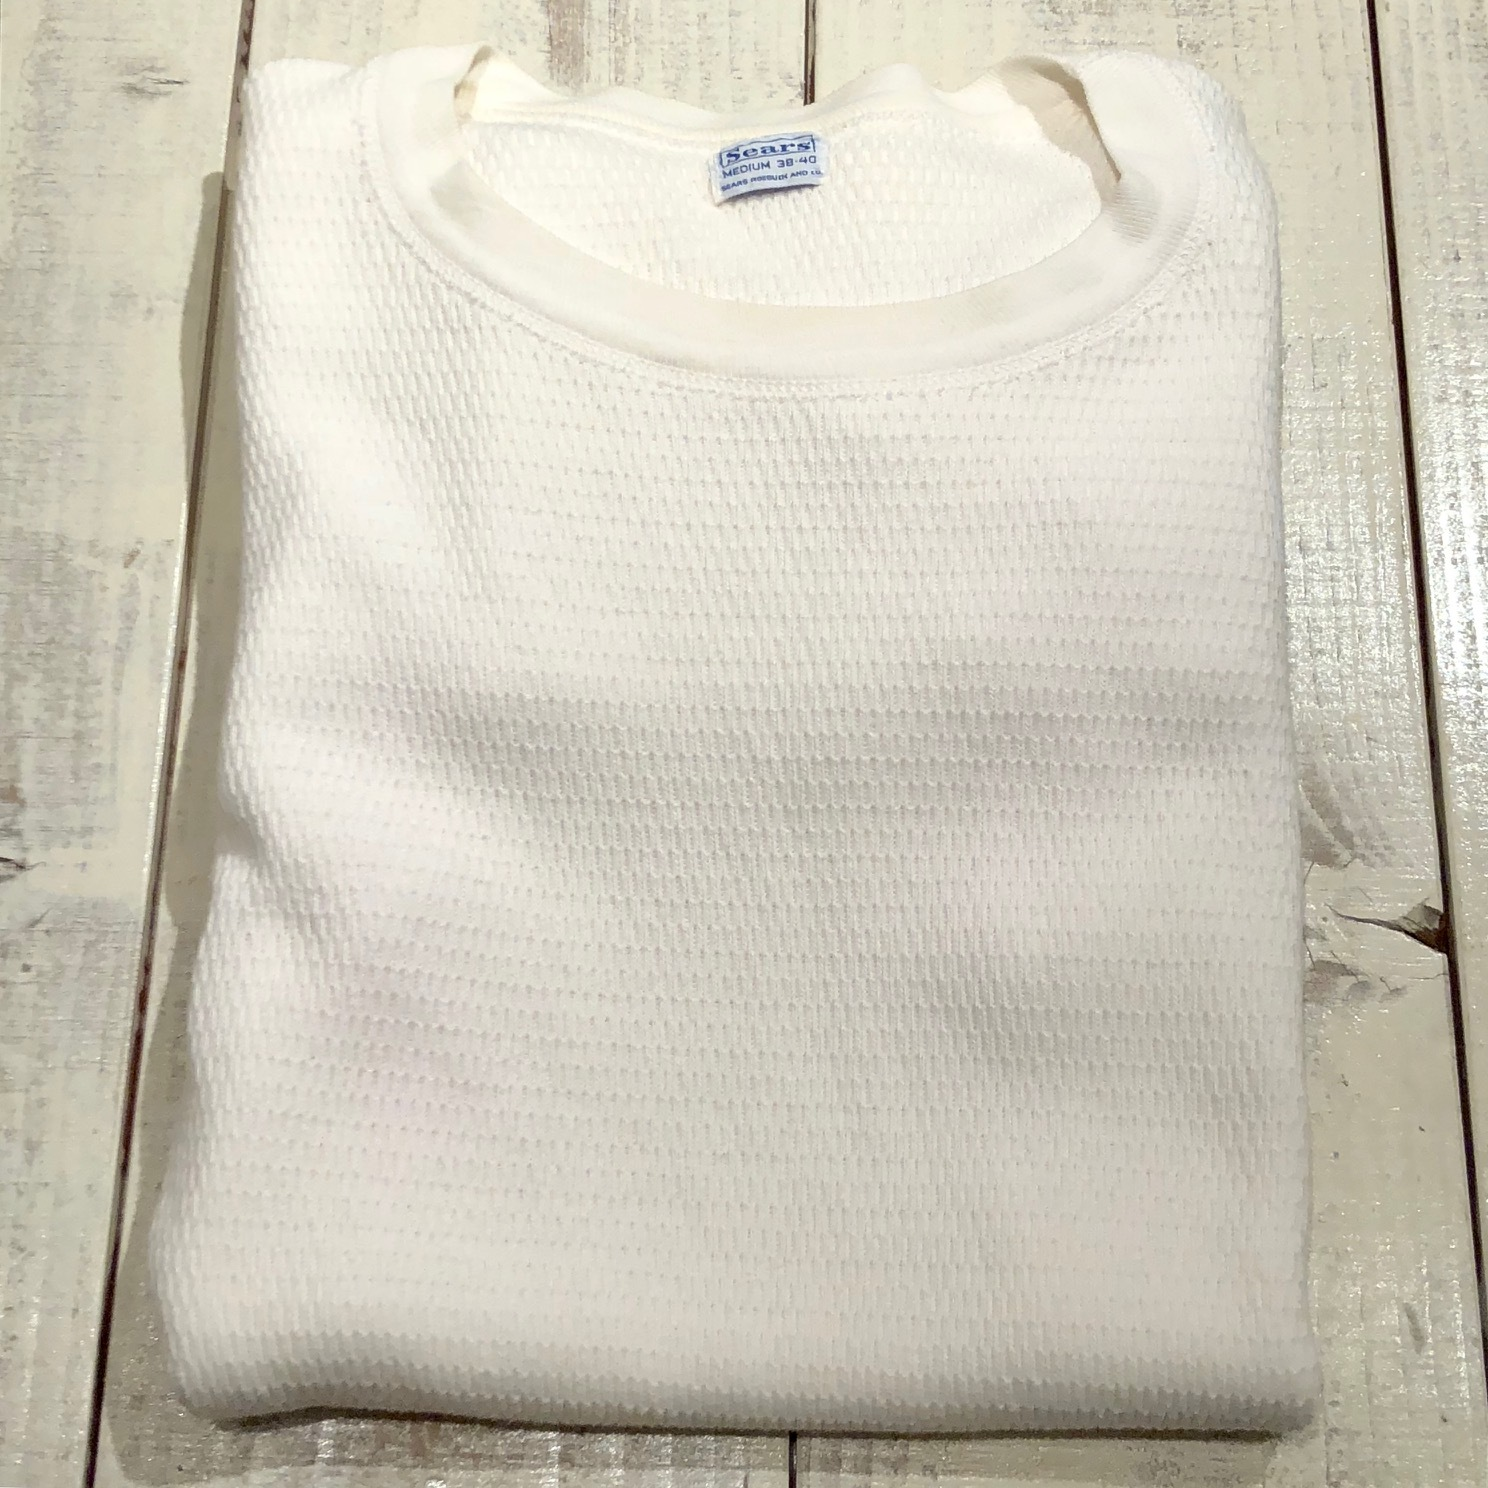 "1950s "" SEARS ROEBUCK AND CO. \"" ALL cotton HONEY-WAFFLE L/S THERMAL WEAR ※1月休業日のお知らせ ._d0172088_18581660.jpg"